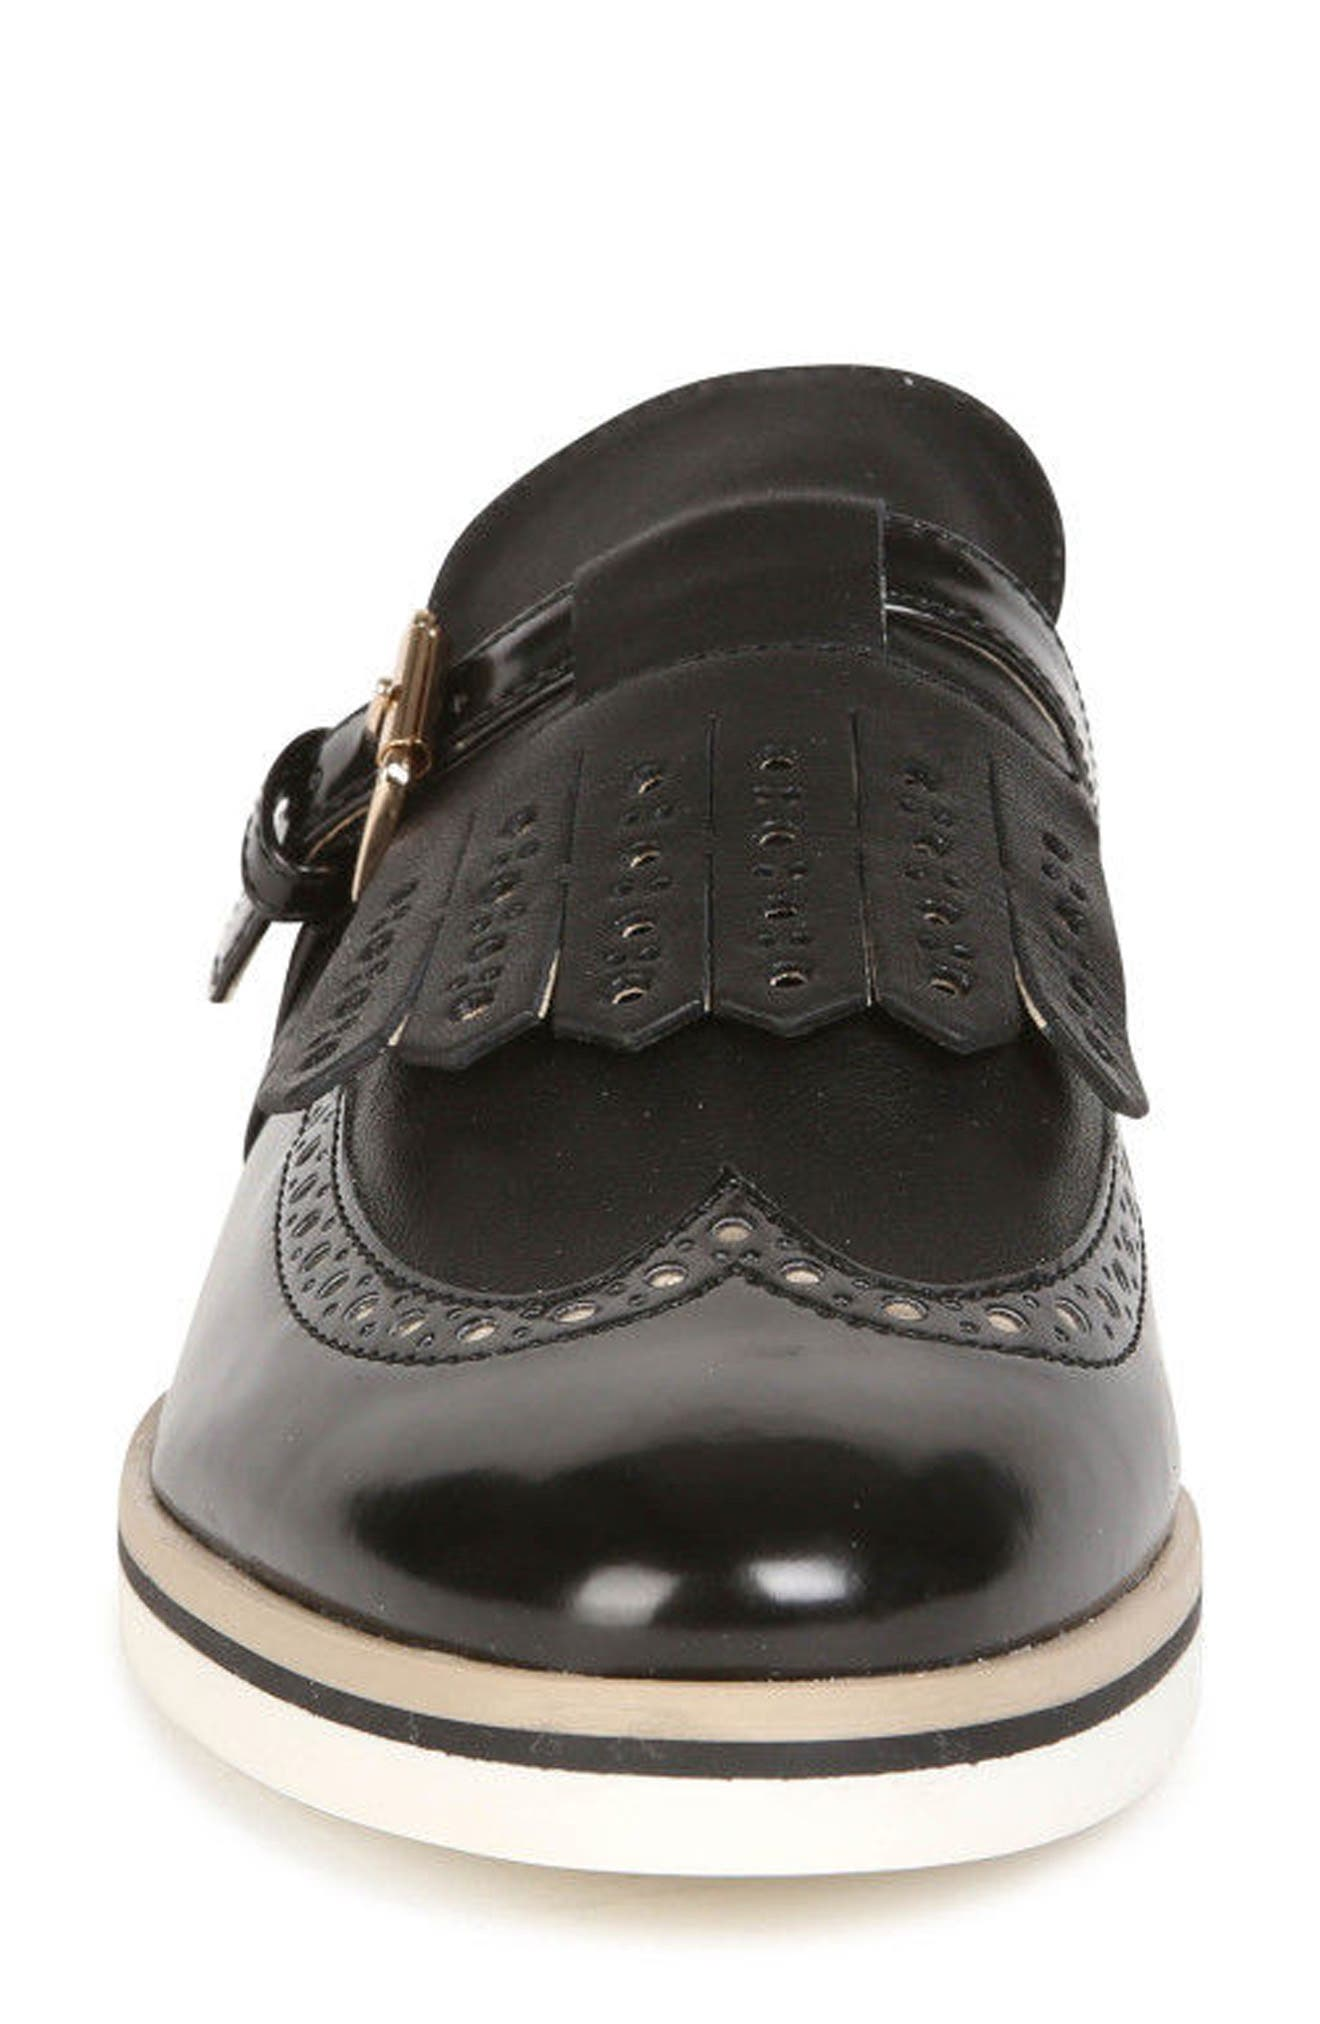 Janalee Cutout Loafer,                             Alternate thumbnail 4, color,                             Black Leather